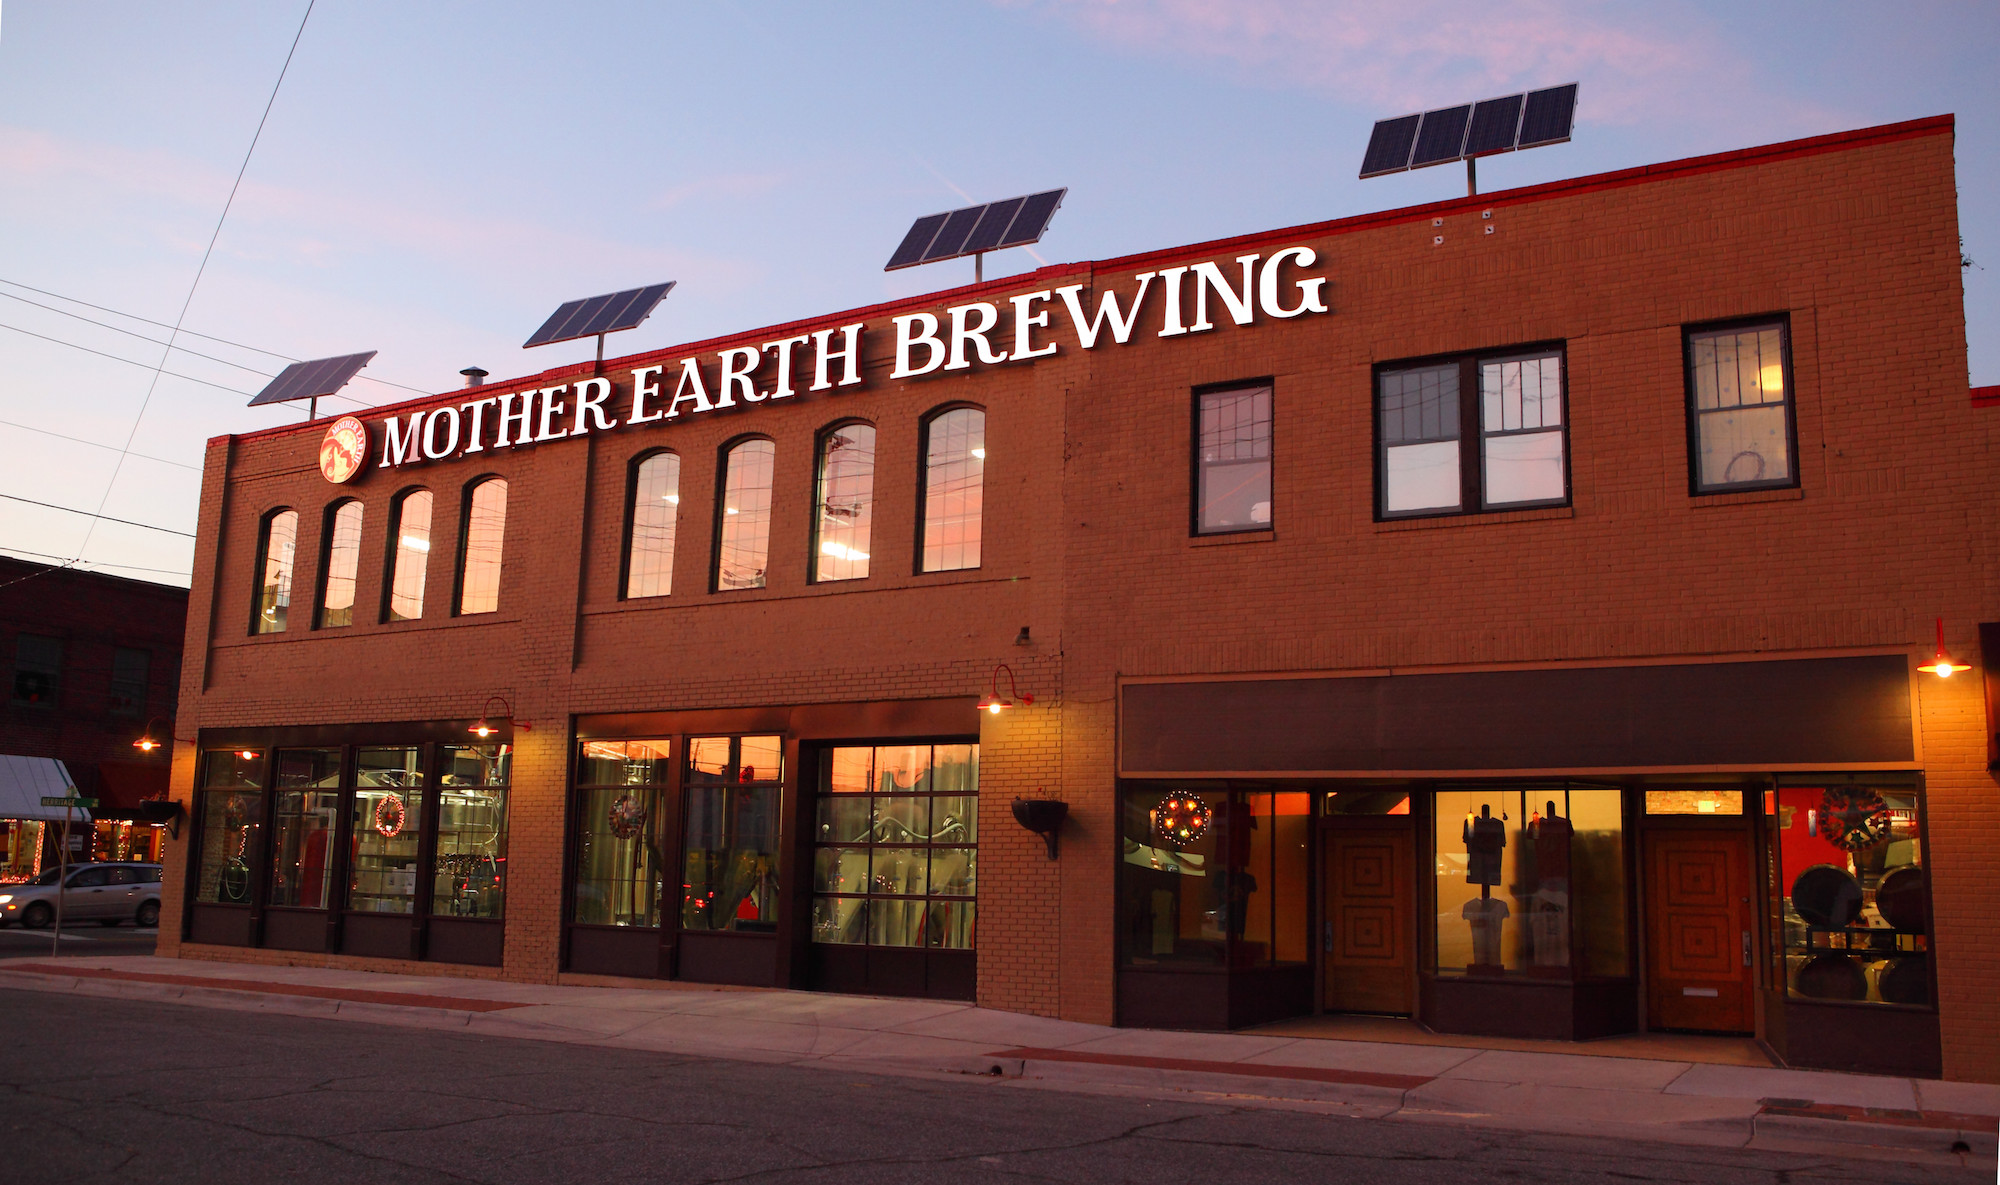 Mother-Earth-Brewery-Exterior-2.jpg